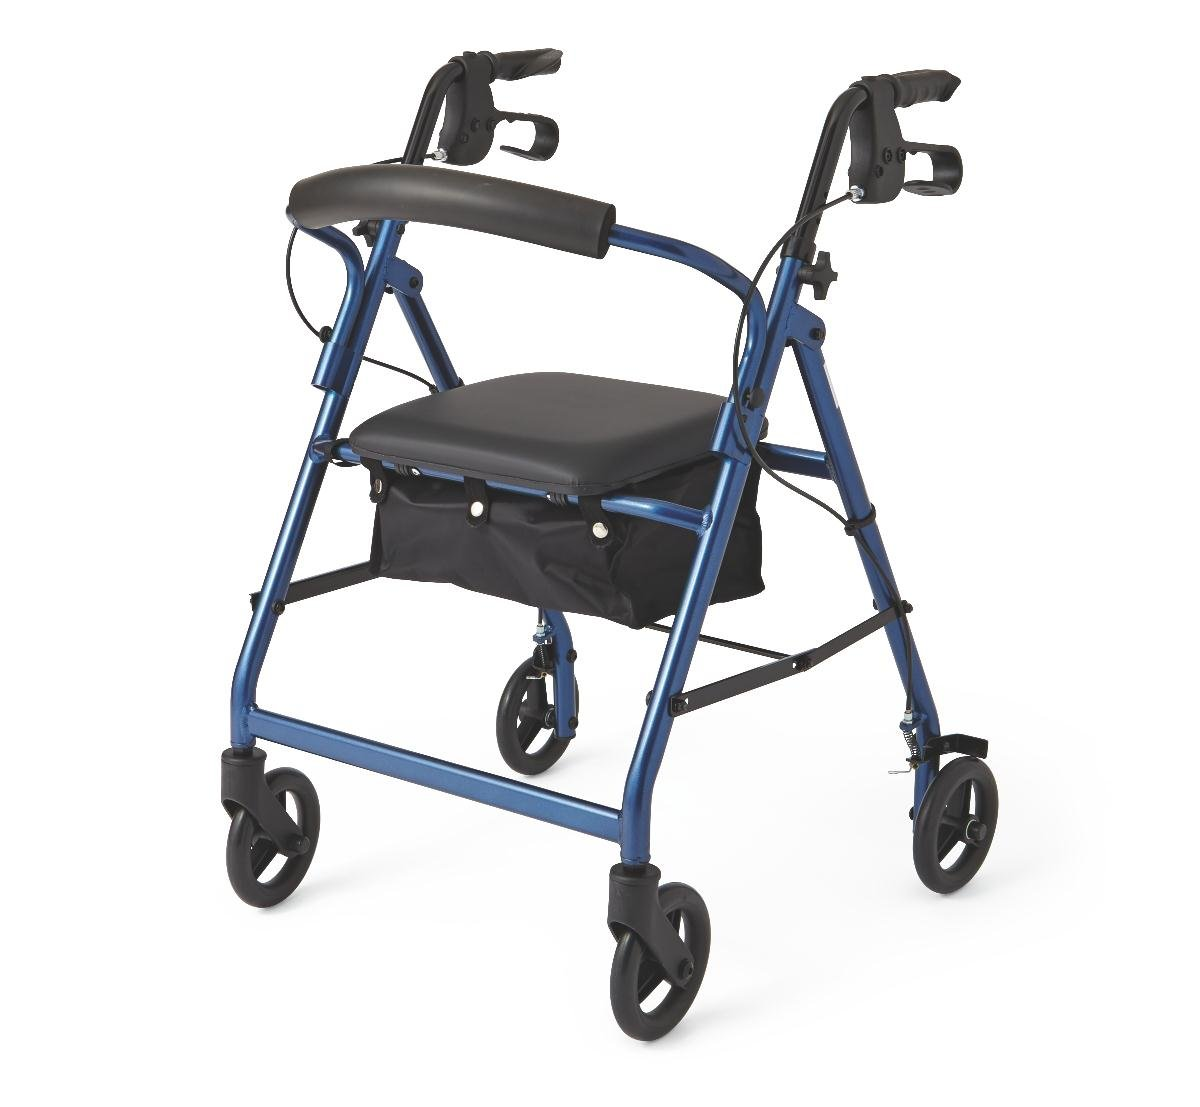 Medline Durable Aluminum Fold Up Mobility Rollator Walker with 6 Inch Wheels and Seat for Adults, Blue